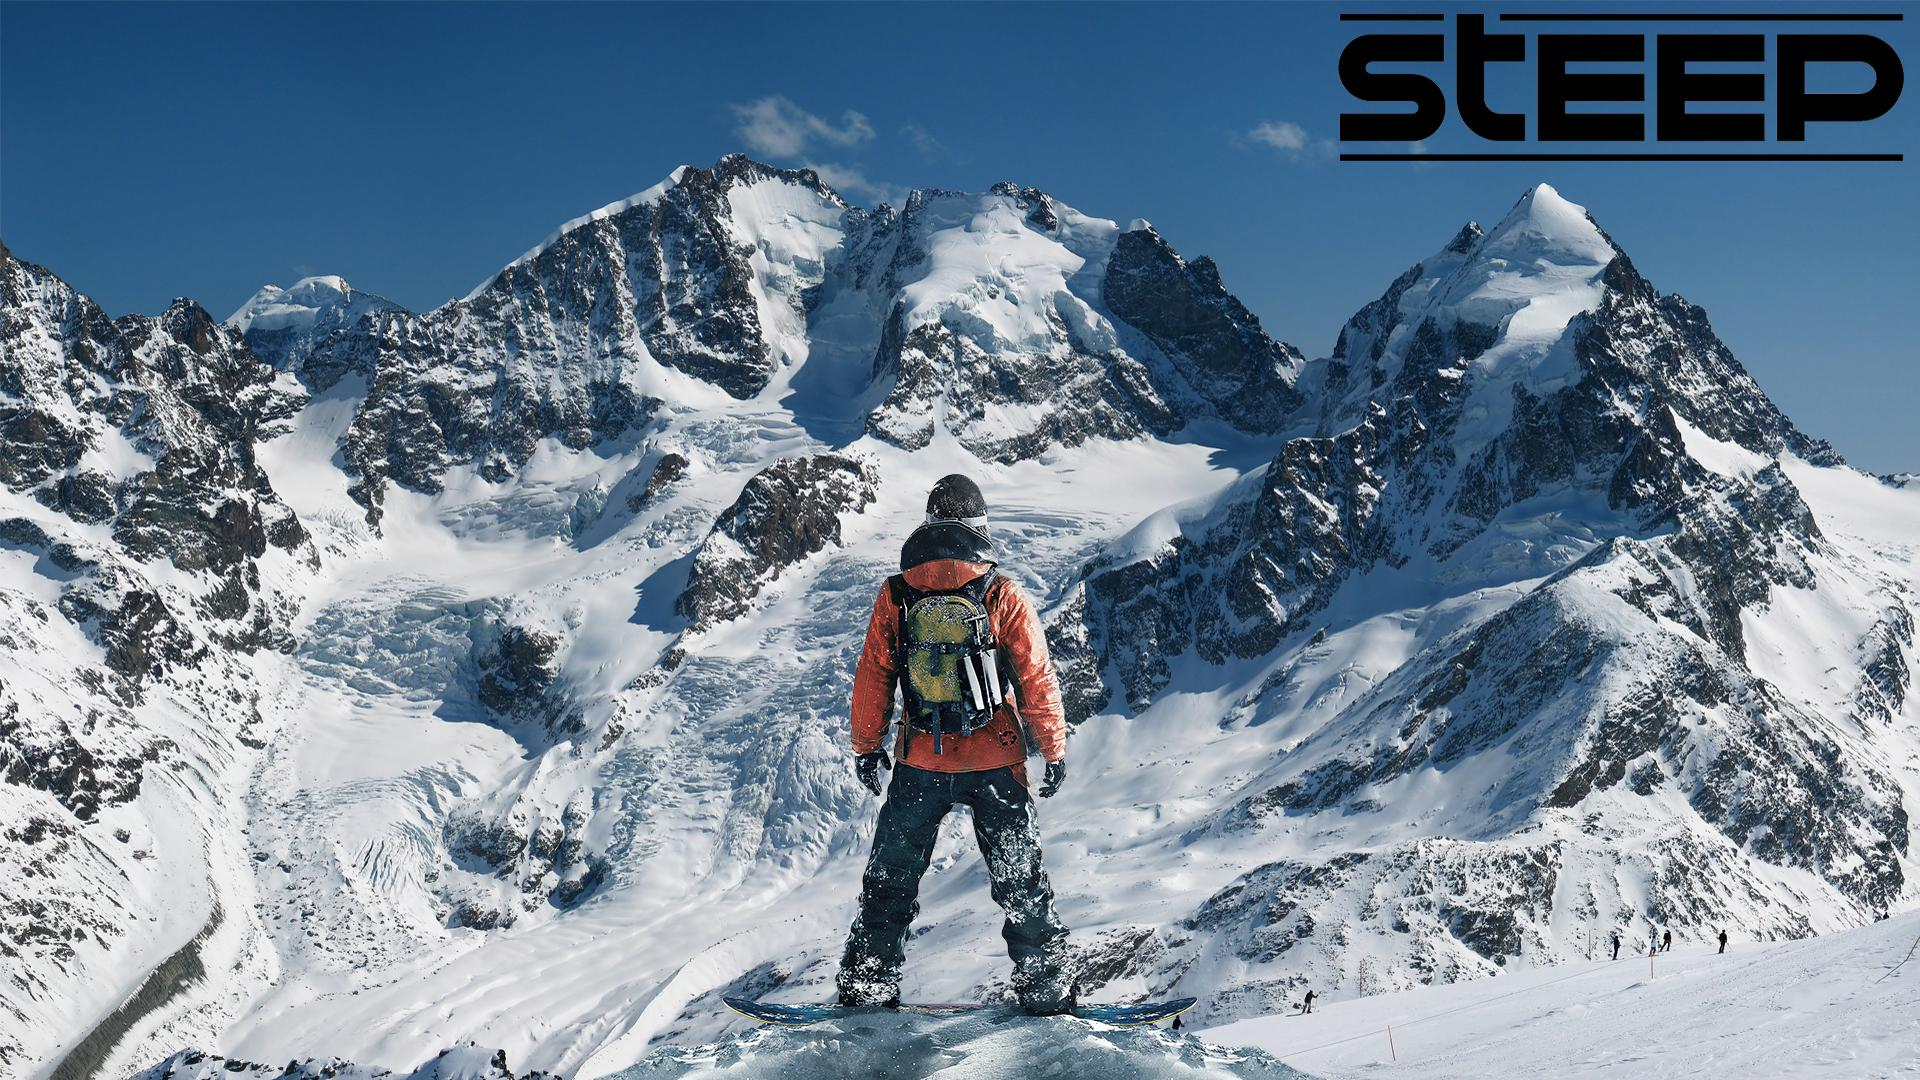 Steep Extreme Sport Game 4k Hd Desktop Wallpaper For 4k: Steep HQ Wallpapers